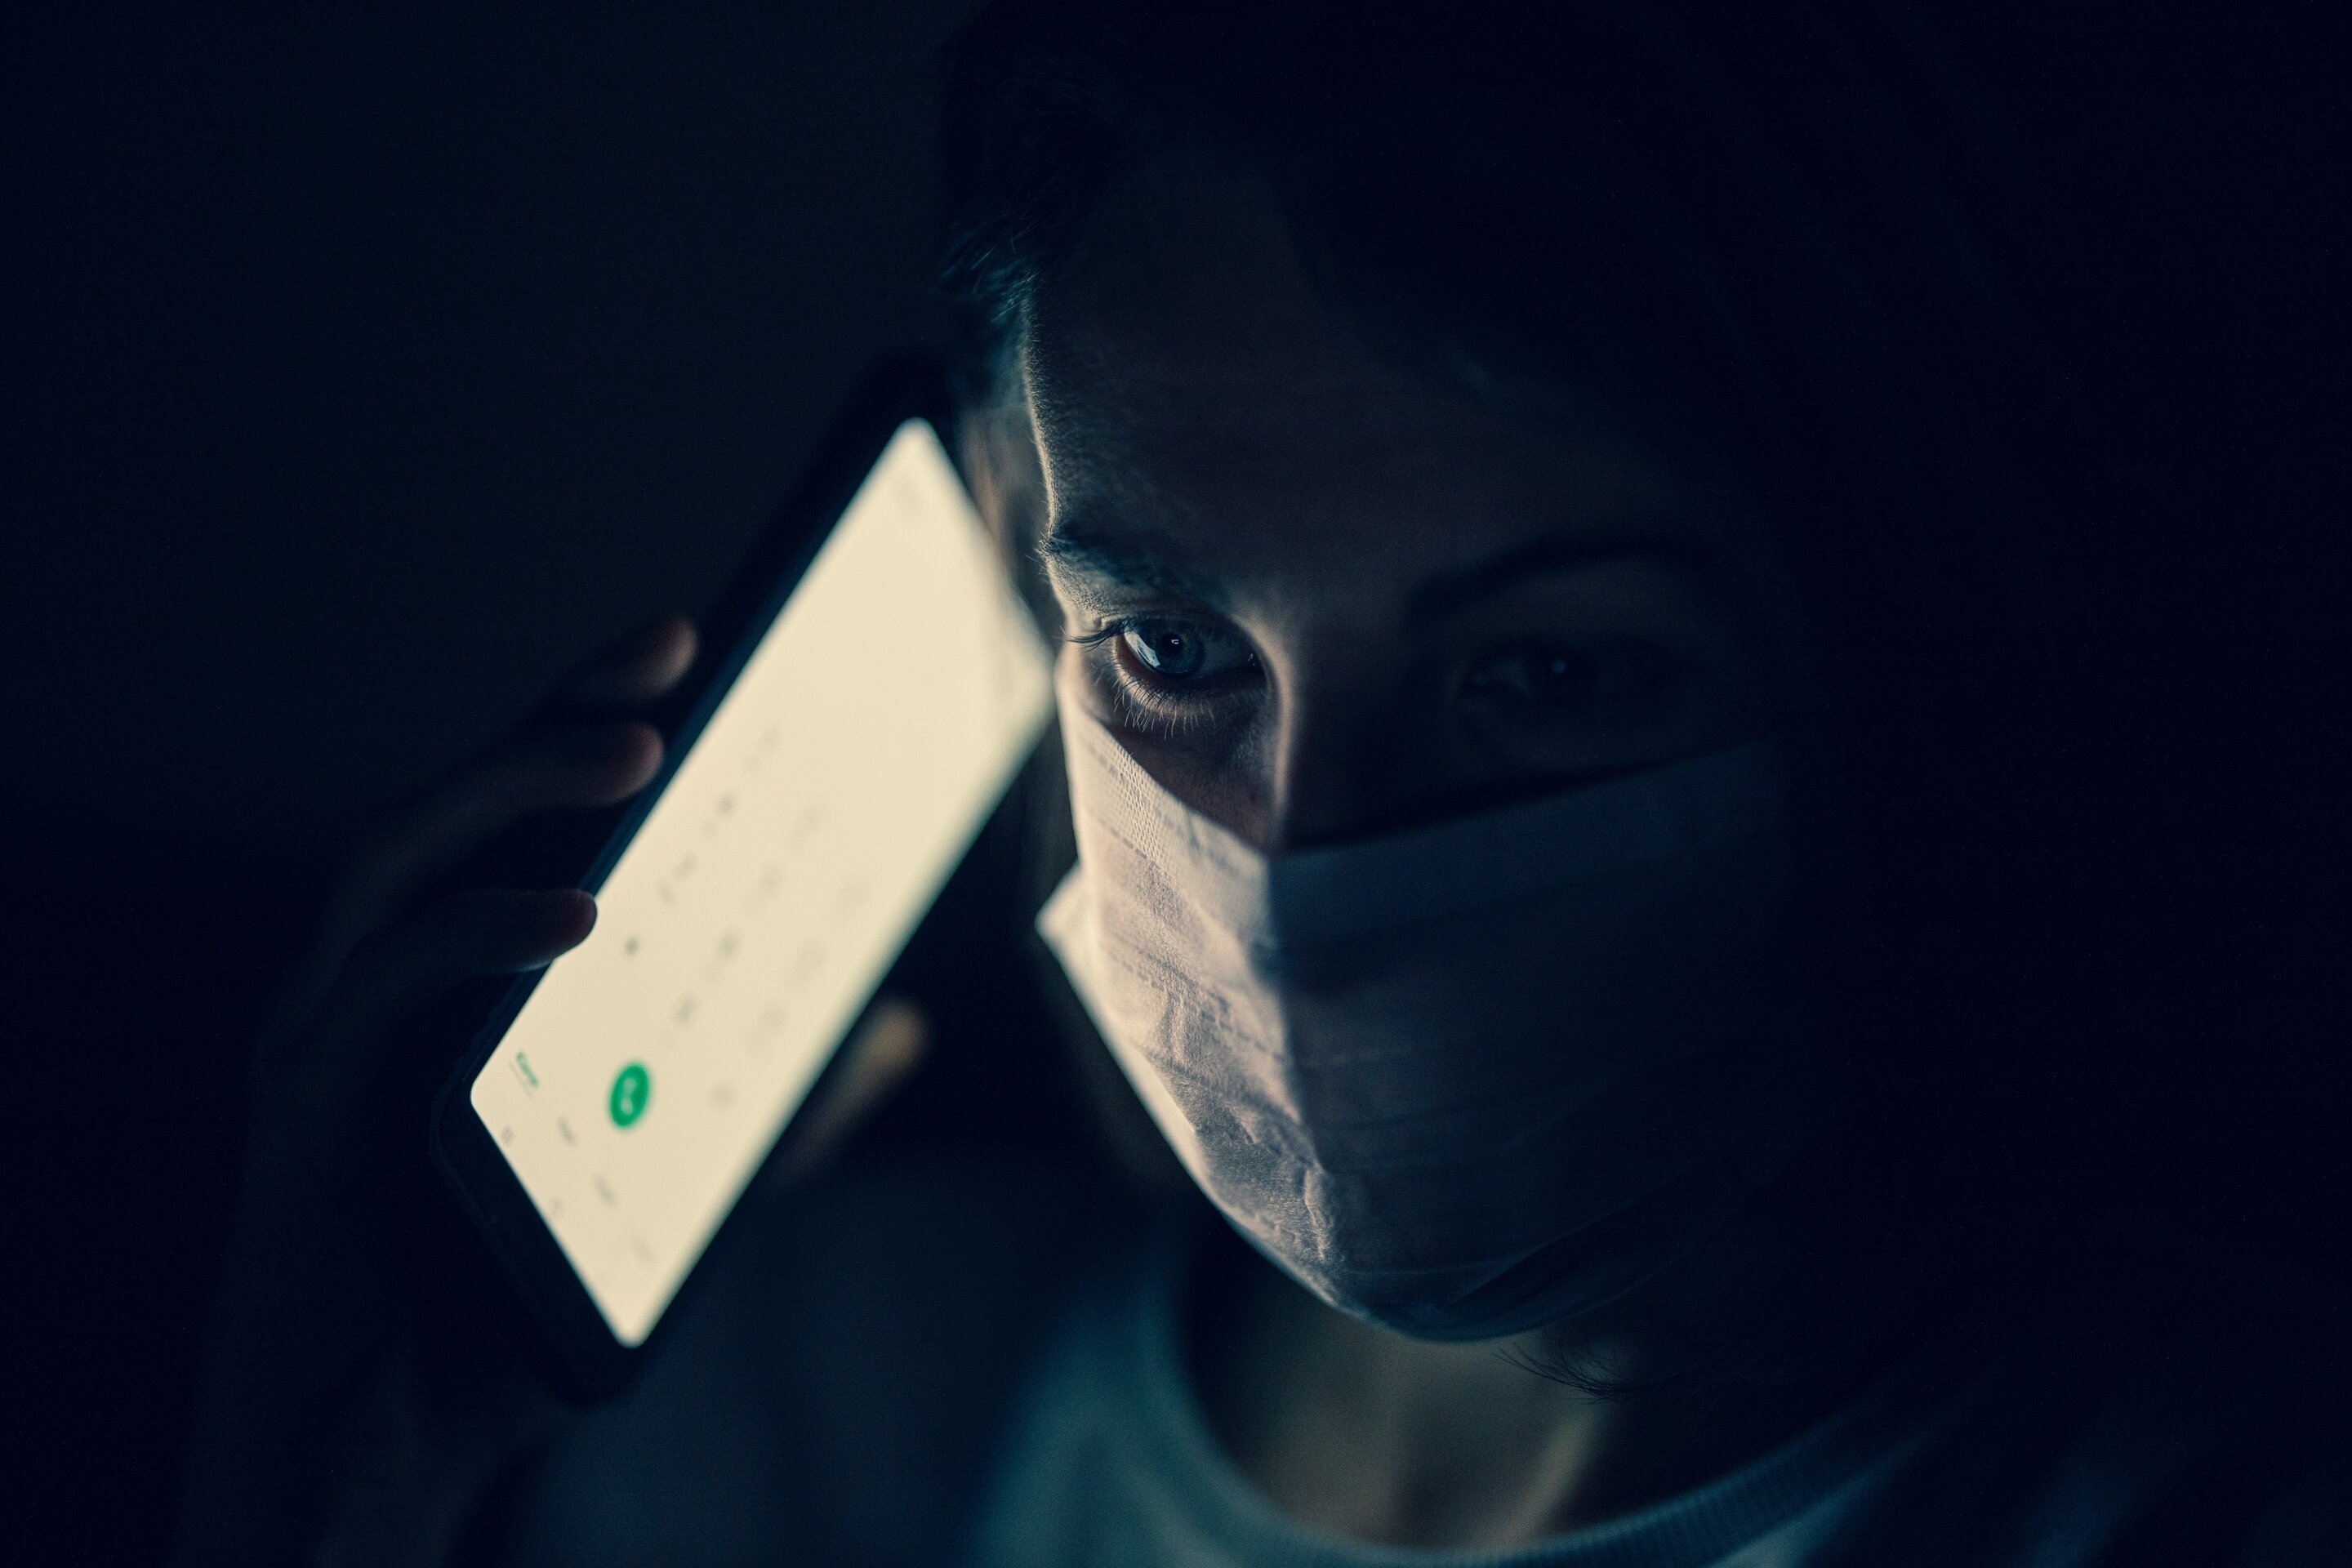 Pandemic's effect on scientists may be long lasting, study finds